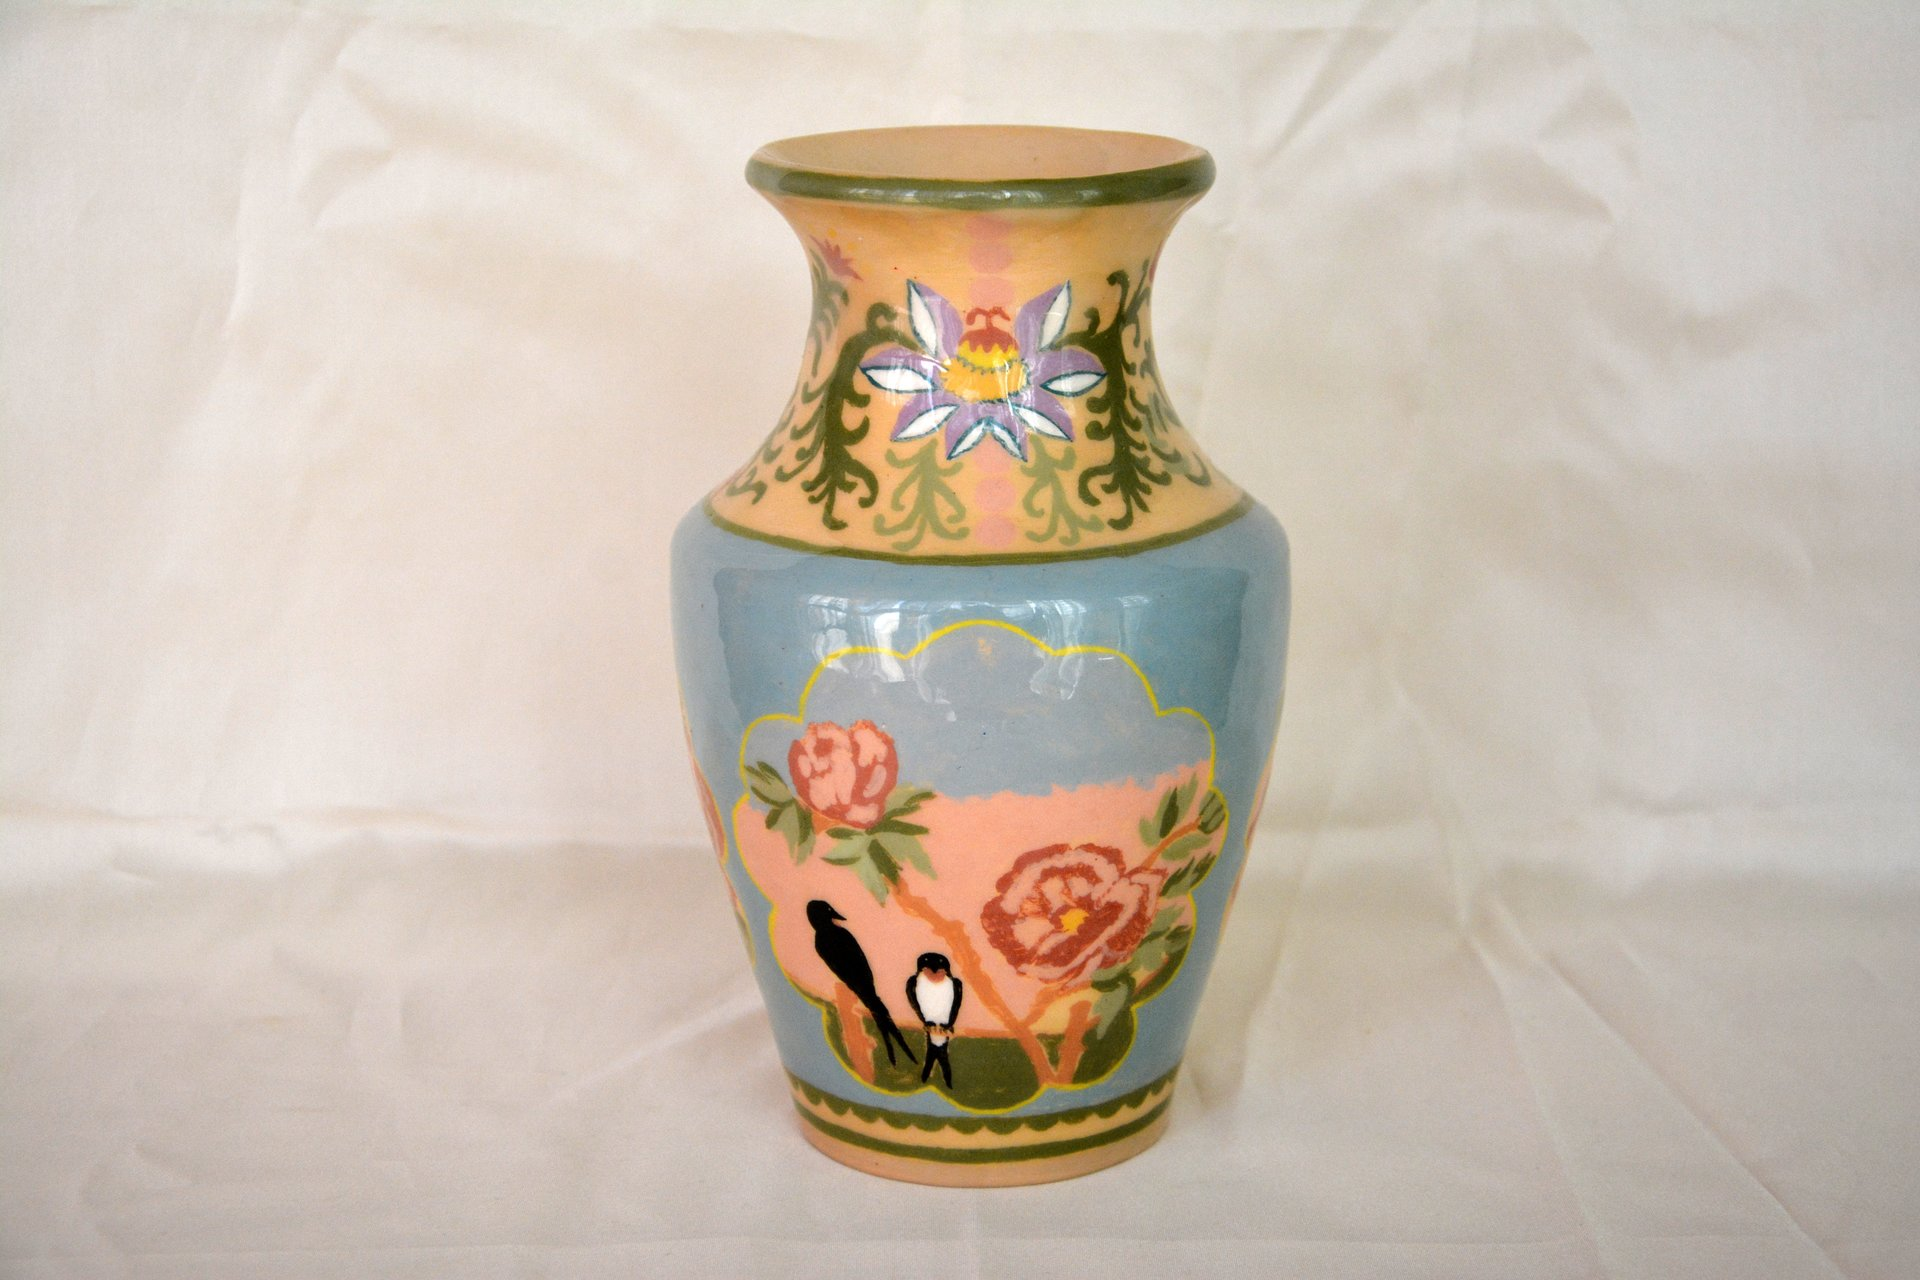 Ceramic classic vase with hand-painted swallows, height  - 18 cm, photo 4 of 5.